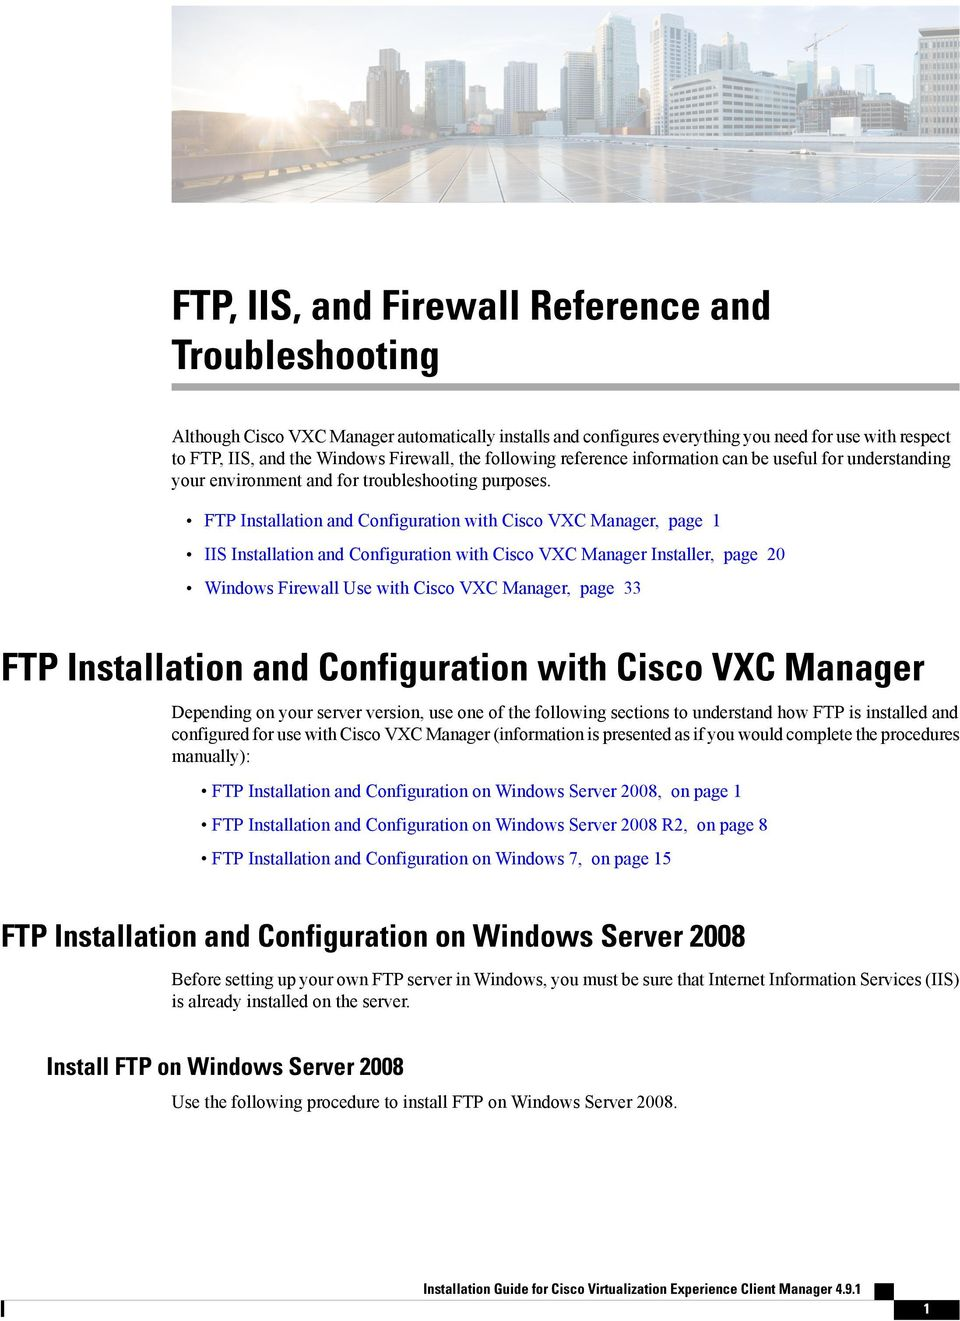 FTP Installation and Configuration with Cisco VXC Manager, page 1 IIS Installation and Configuration with Cisco VXC Manager Installer, page 20 Windows Firewall Use with Cisco VXC Manager, page 33 FTP